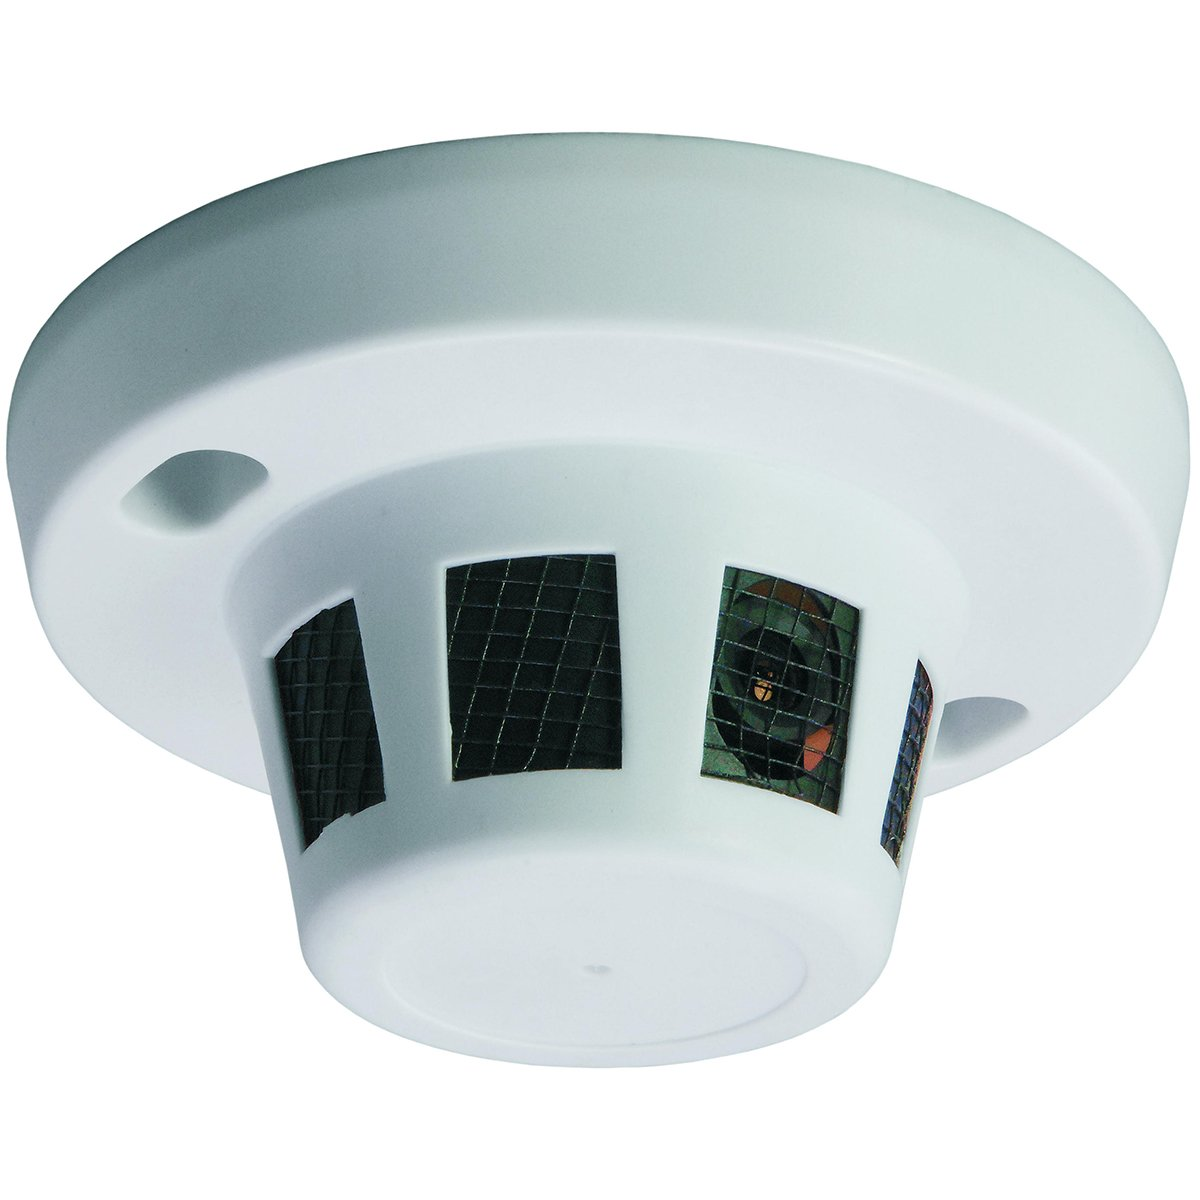 STOiC Technology Covert HD Smoke Detector Camera, 1080P, 3.7mm Pinhole Lens 4 in 1 by STOiC Technology, LLC.